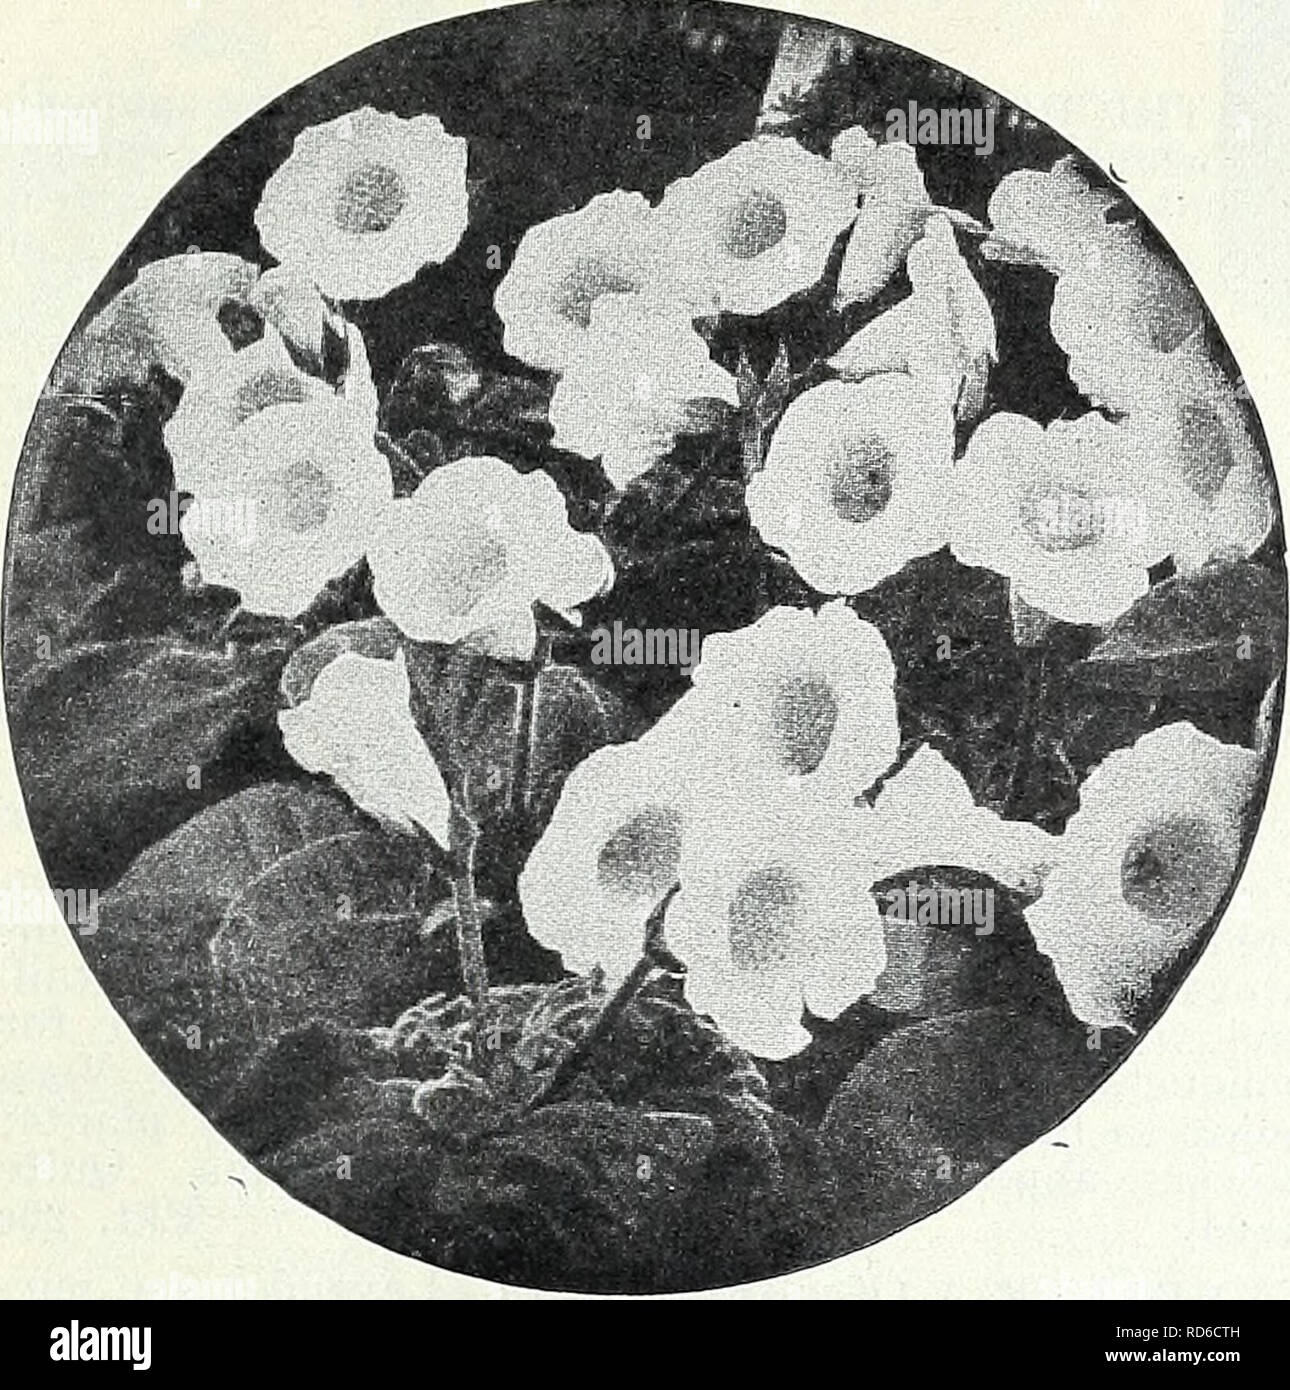 . Currie's garden annual : spring 1934 59th year. Flowers Seeds Catalogs; Bulbs (Plants) Seeds Catalogs; Vegetables Seeds Catalogs; Nurseries (Horticulture) Catalogs; Plants, Ornamental Catalogs; Gardening Equipment and supplies Catalogs. CURRIE BROTHERS CO., MILWAUKEE, WIS Page 25. GLOXINIA Handsome, free flowering, tender perennials for pot culture, succeed- ing best in partially shaded places. Extra Choice Mixed Pkt. 20c GOURDS (Ornamental) Rapid growing annual climbers bearing orna- mental fruits. They are useful for covering fences, trellis, unsightly fences, etc. Apple-shaped. Beautifull - Stock Image